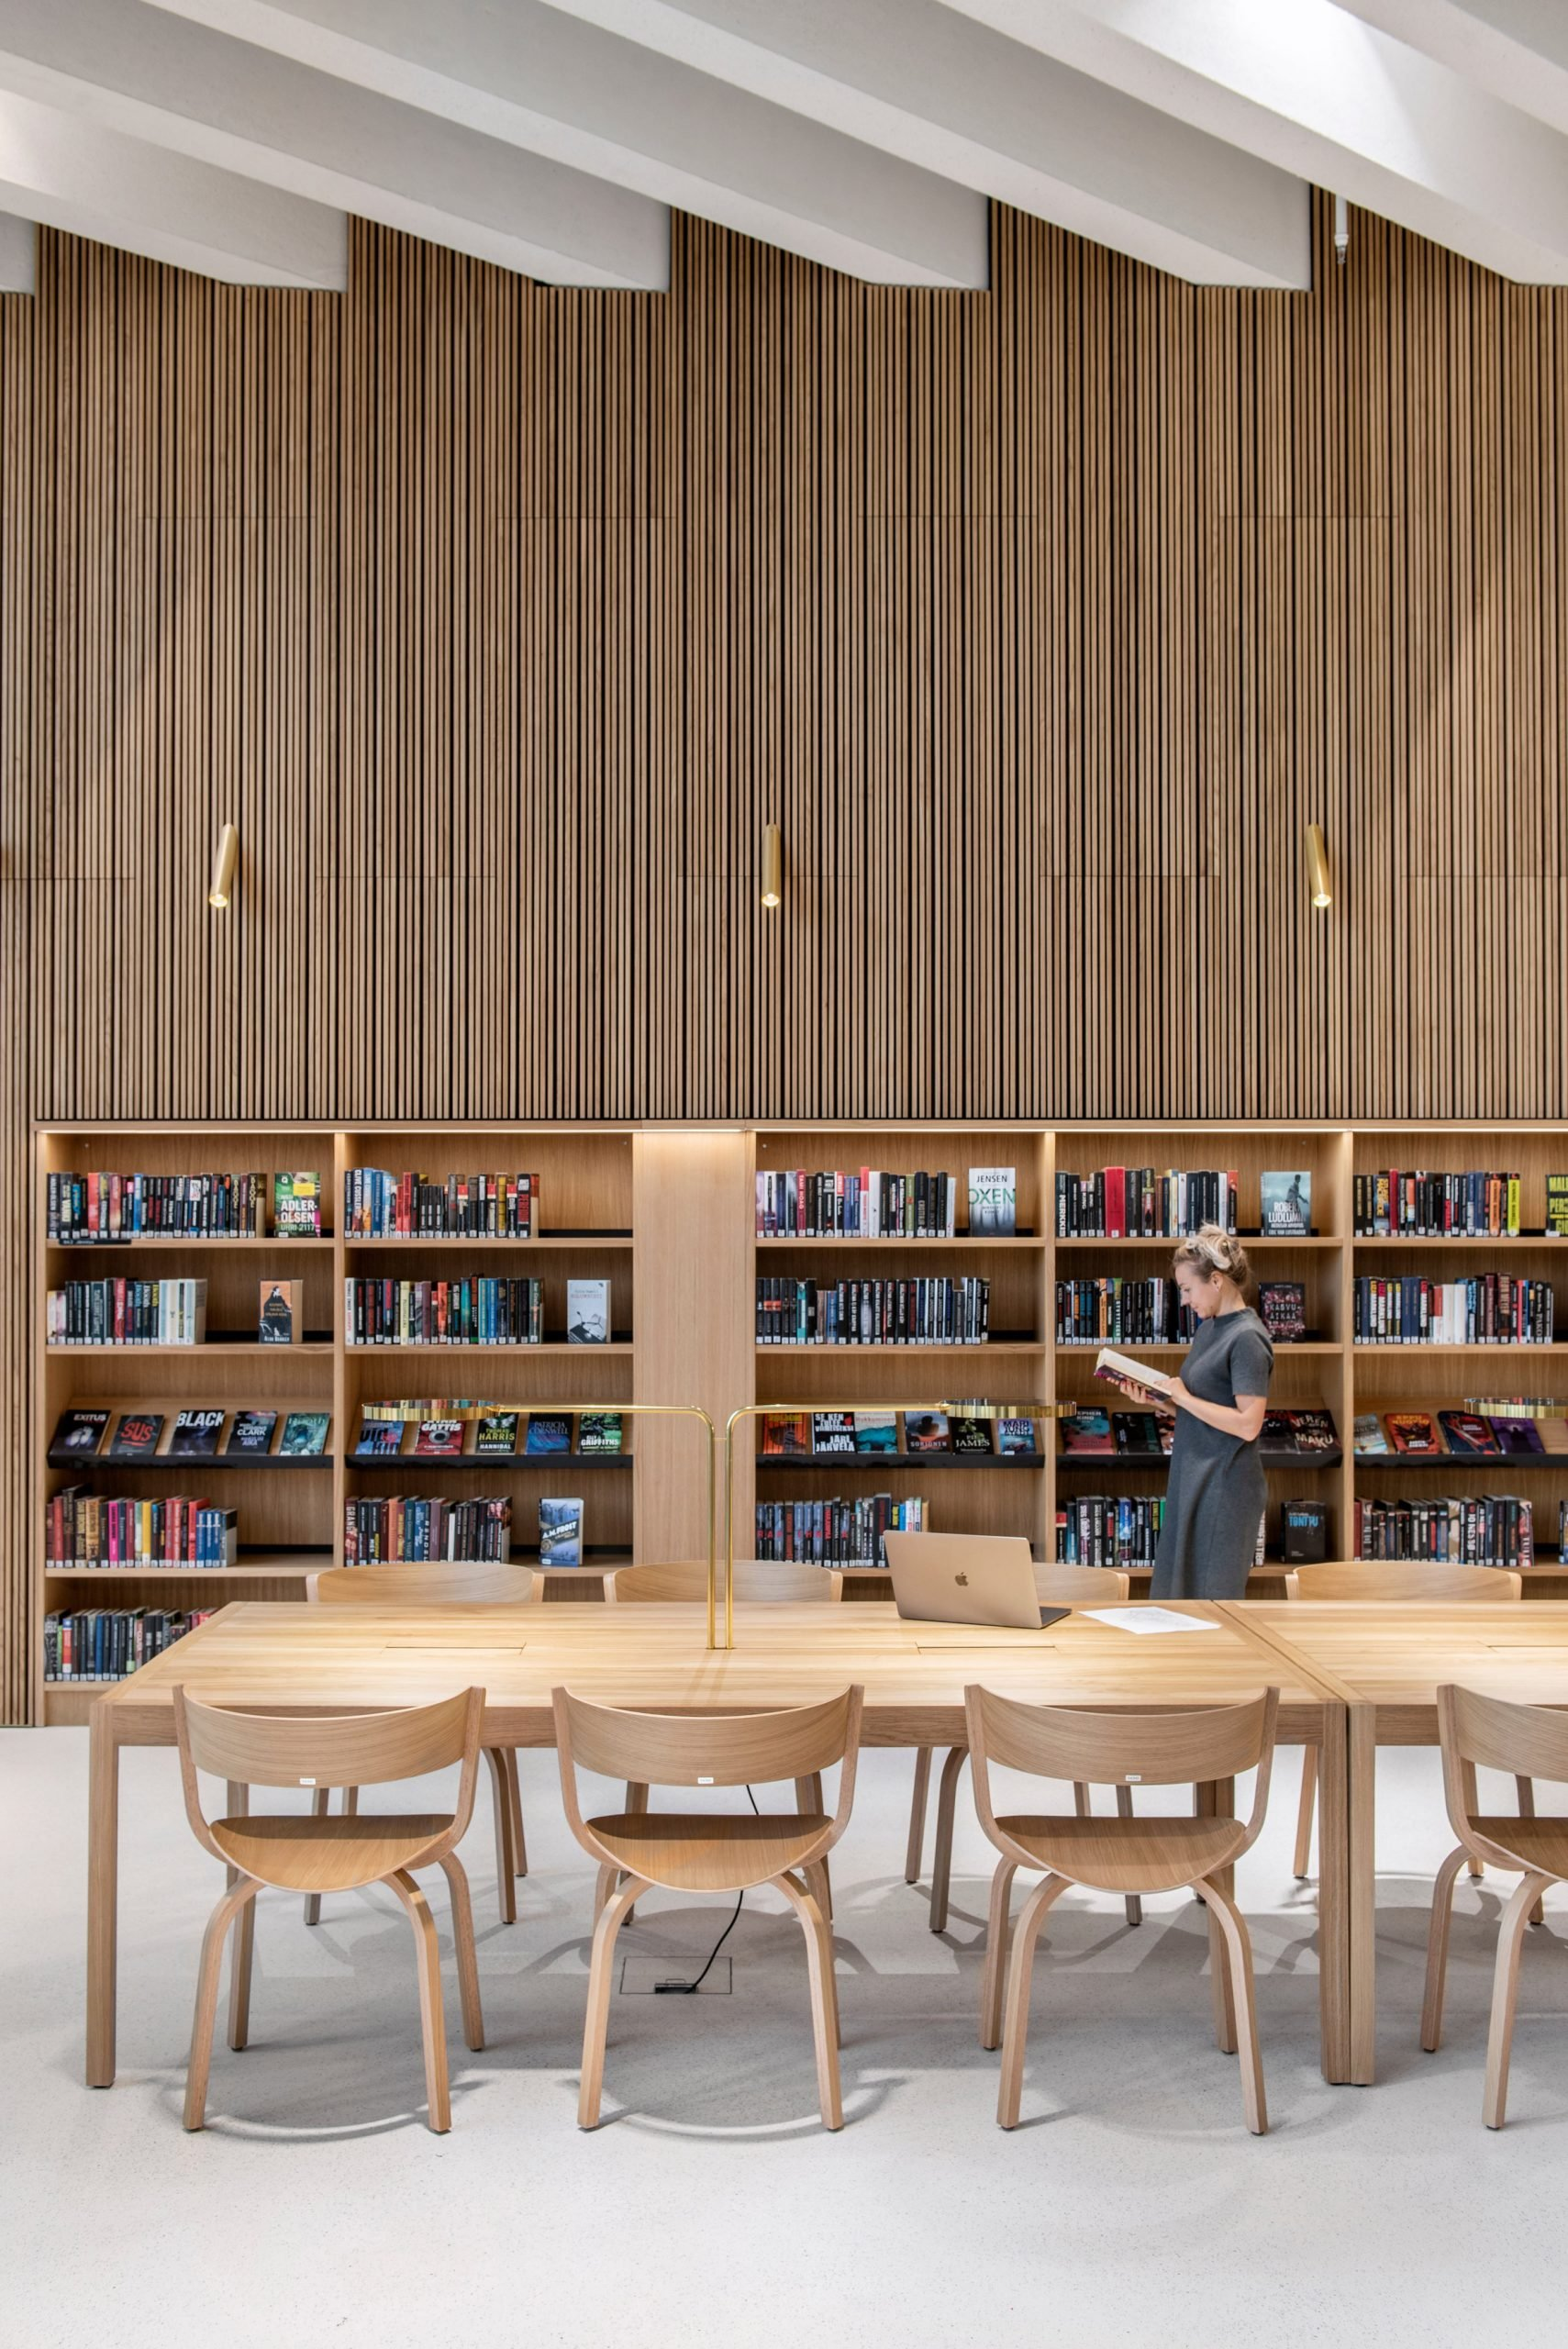 Slatted timber walls in Finnish library